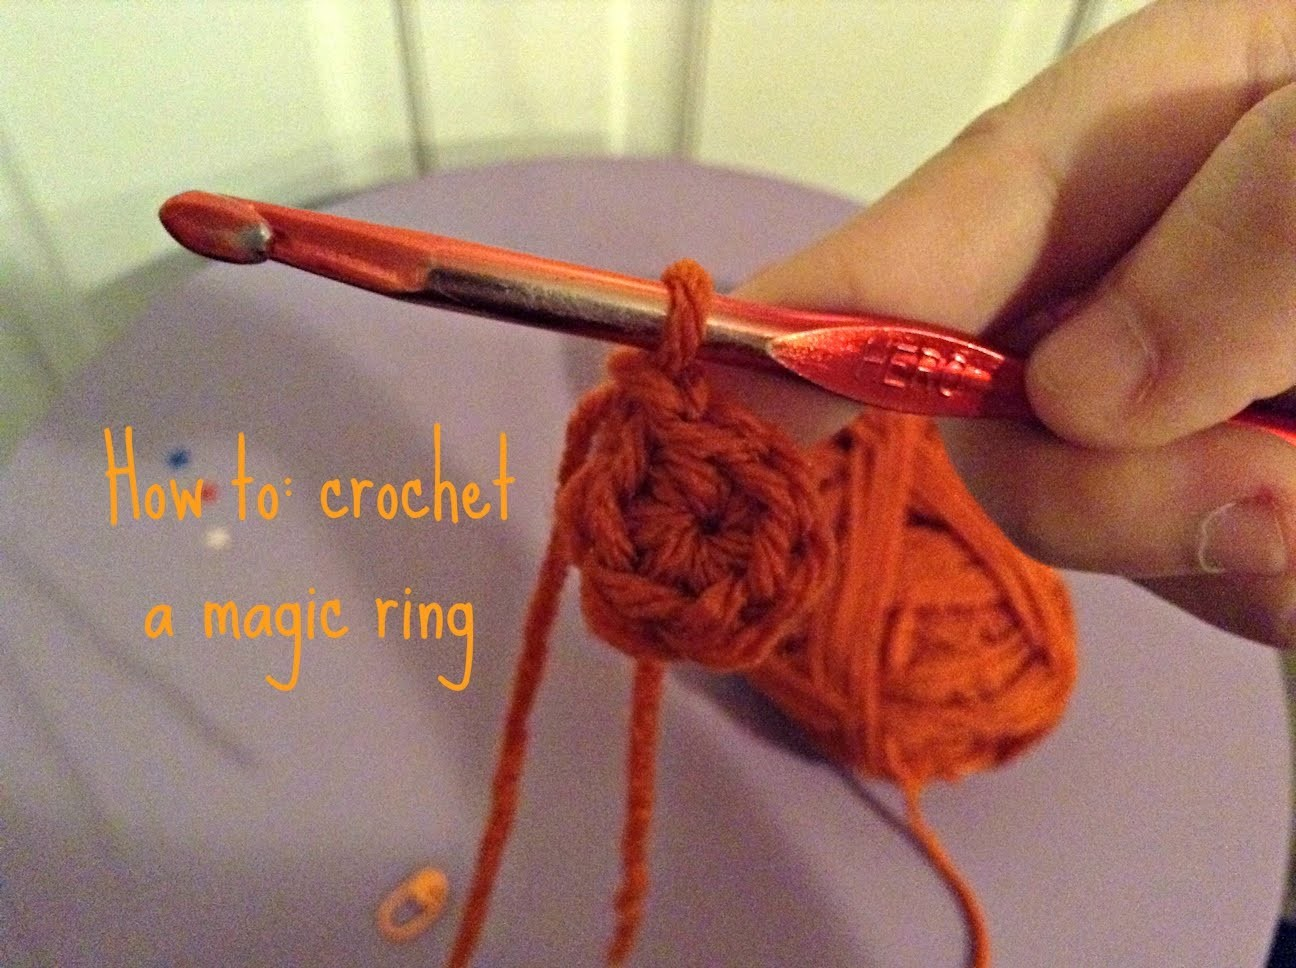 Crochet: Magic ring tutorial